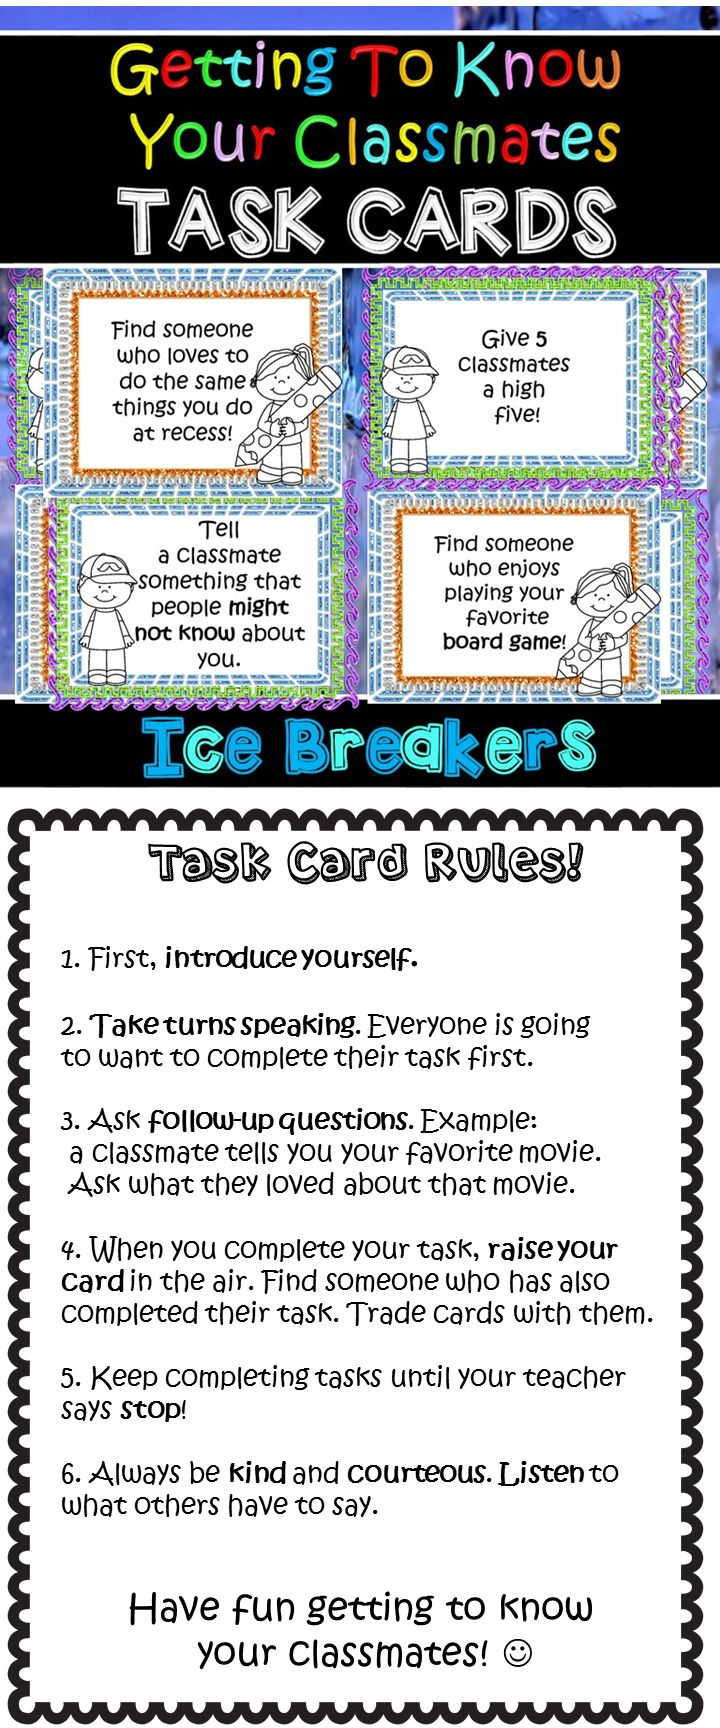 Getting to know your classmates Task Cards! Fun ice breaker games for back to school! beginning of the year fun